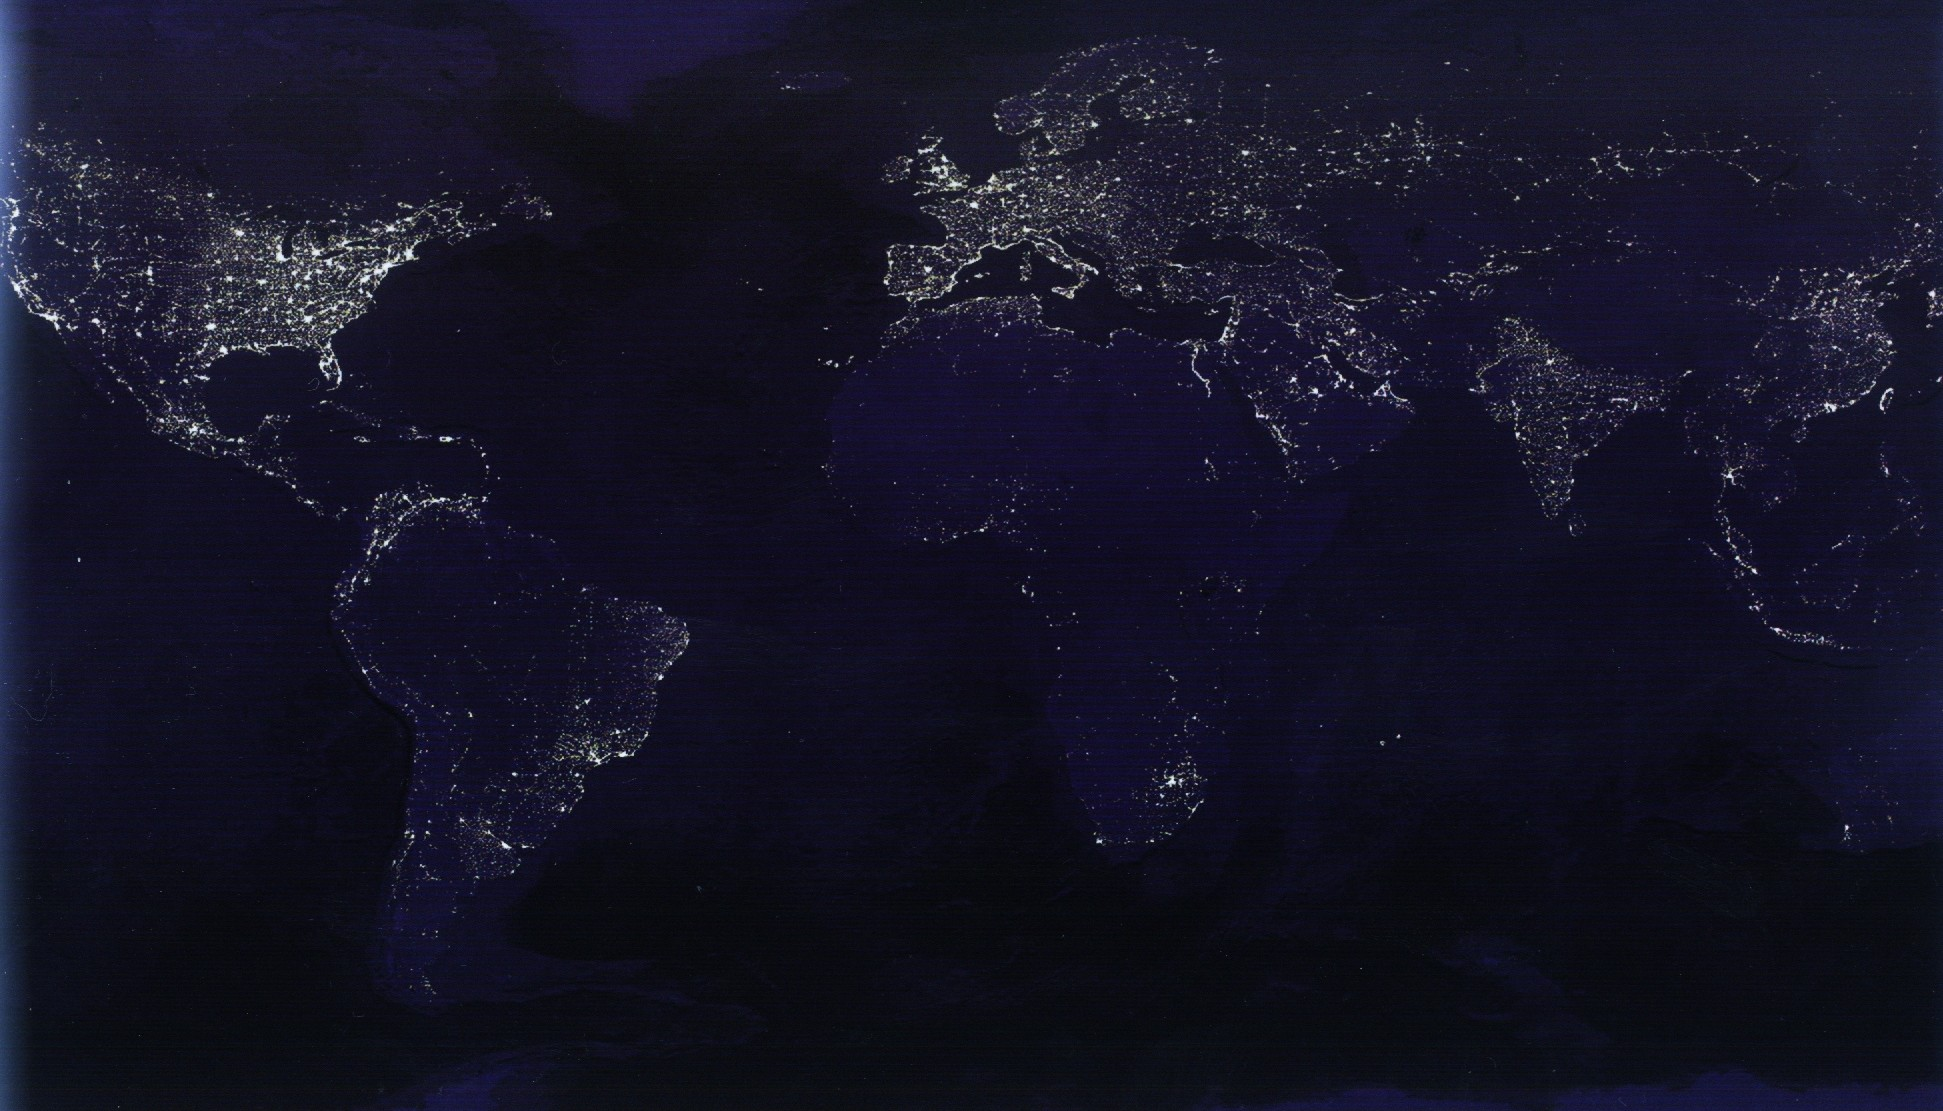 World map at night wallpaper 28 images earth at night wallpaper world map at night wallpaper by the night images night hd wallpaper and background photos gumiabroncs Image collections